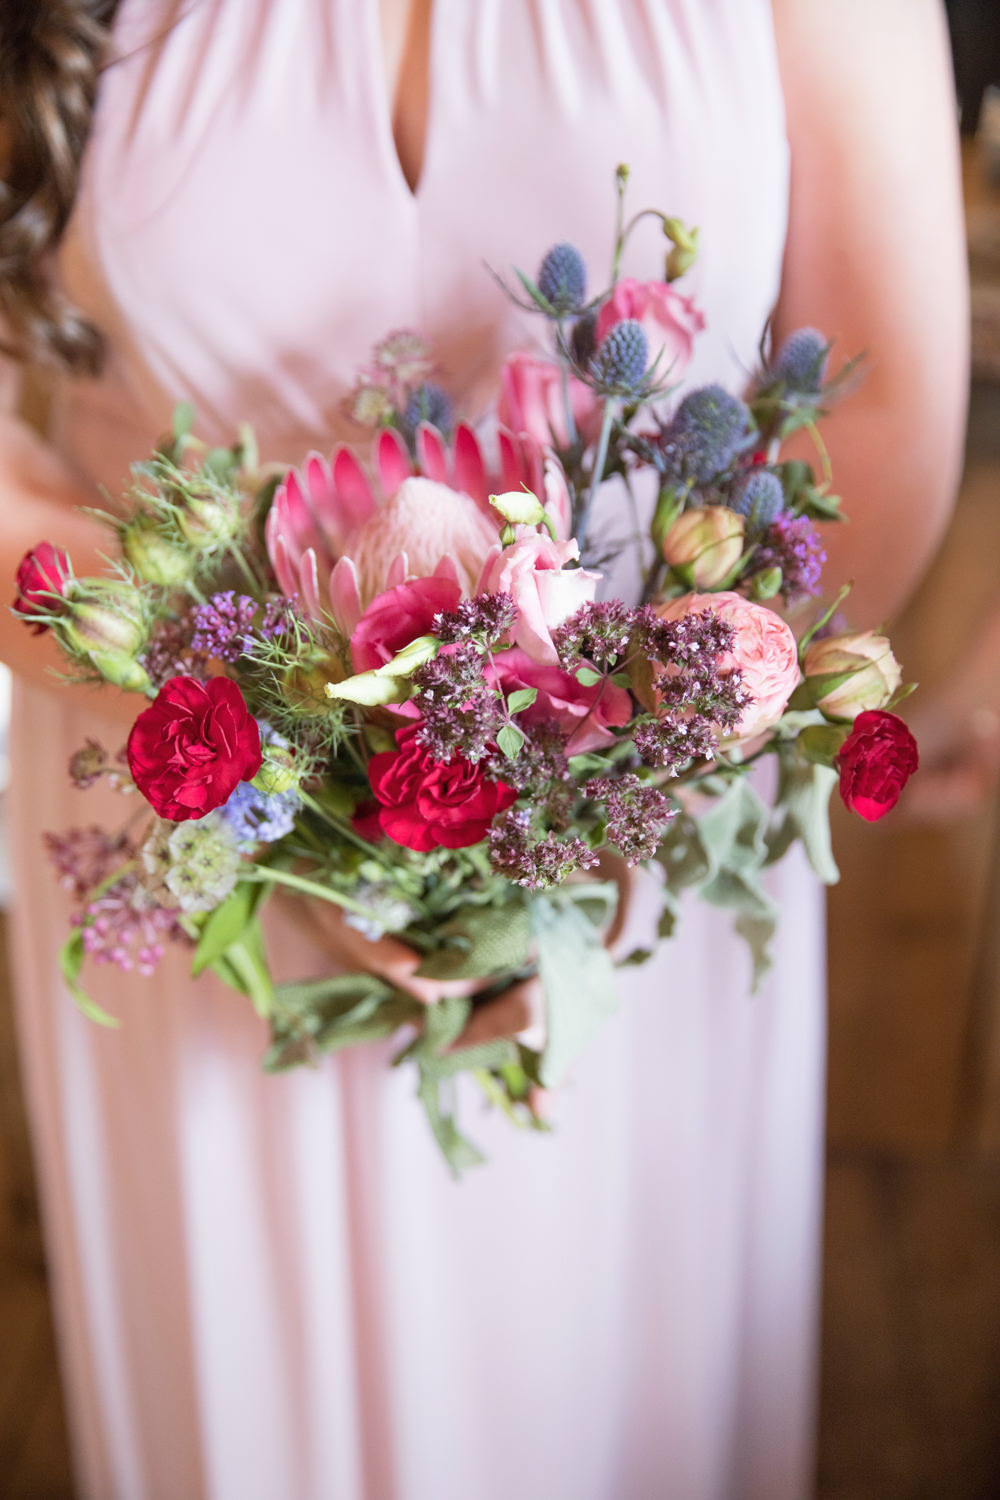 Flowers Bouquet Bridesmaid Red Pink Protea Thistle Rose House Meadow Wedding Kerry Ann Duffy Photography